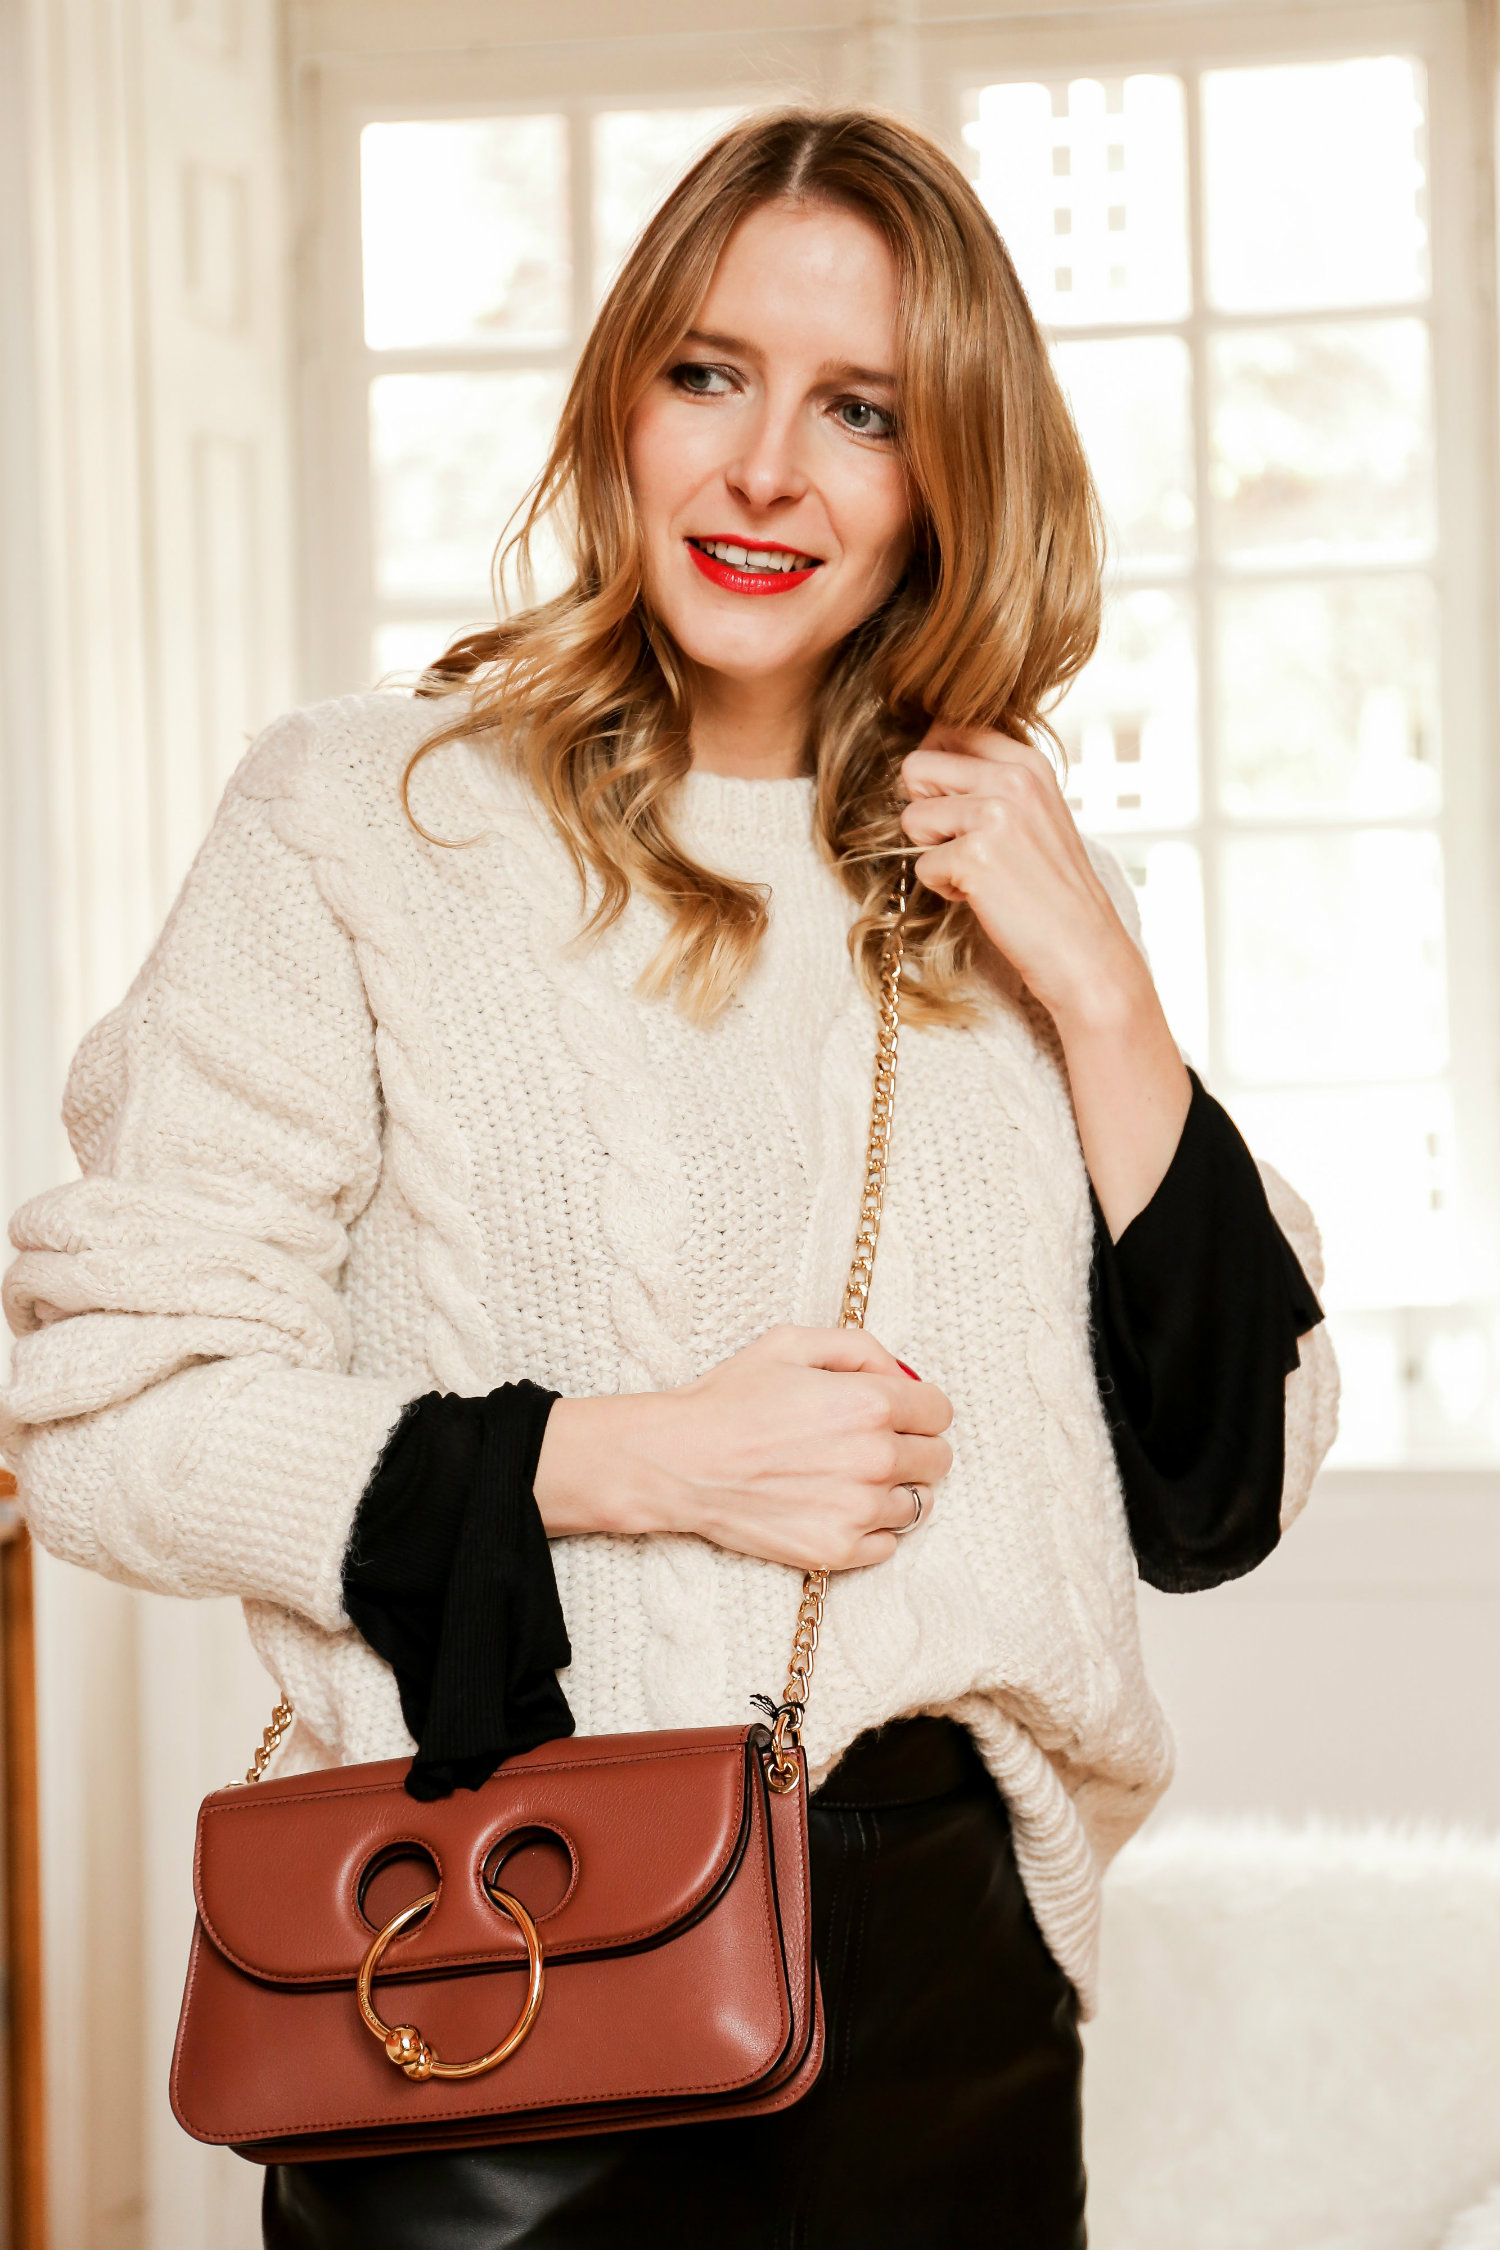 MOD-by-Monique-Fashion-Looks-Chunky-Knits-3_